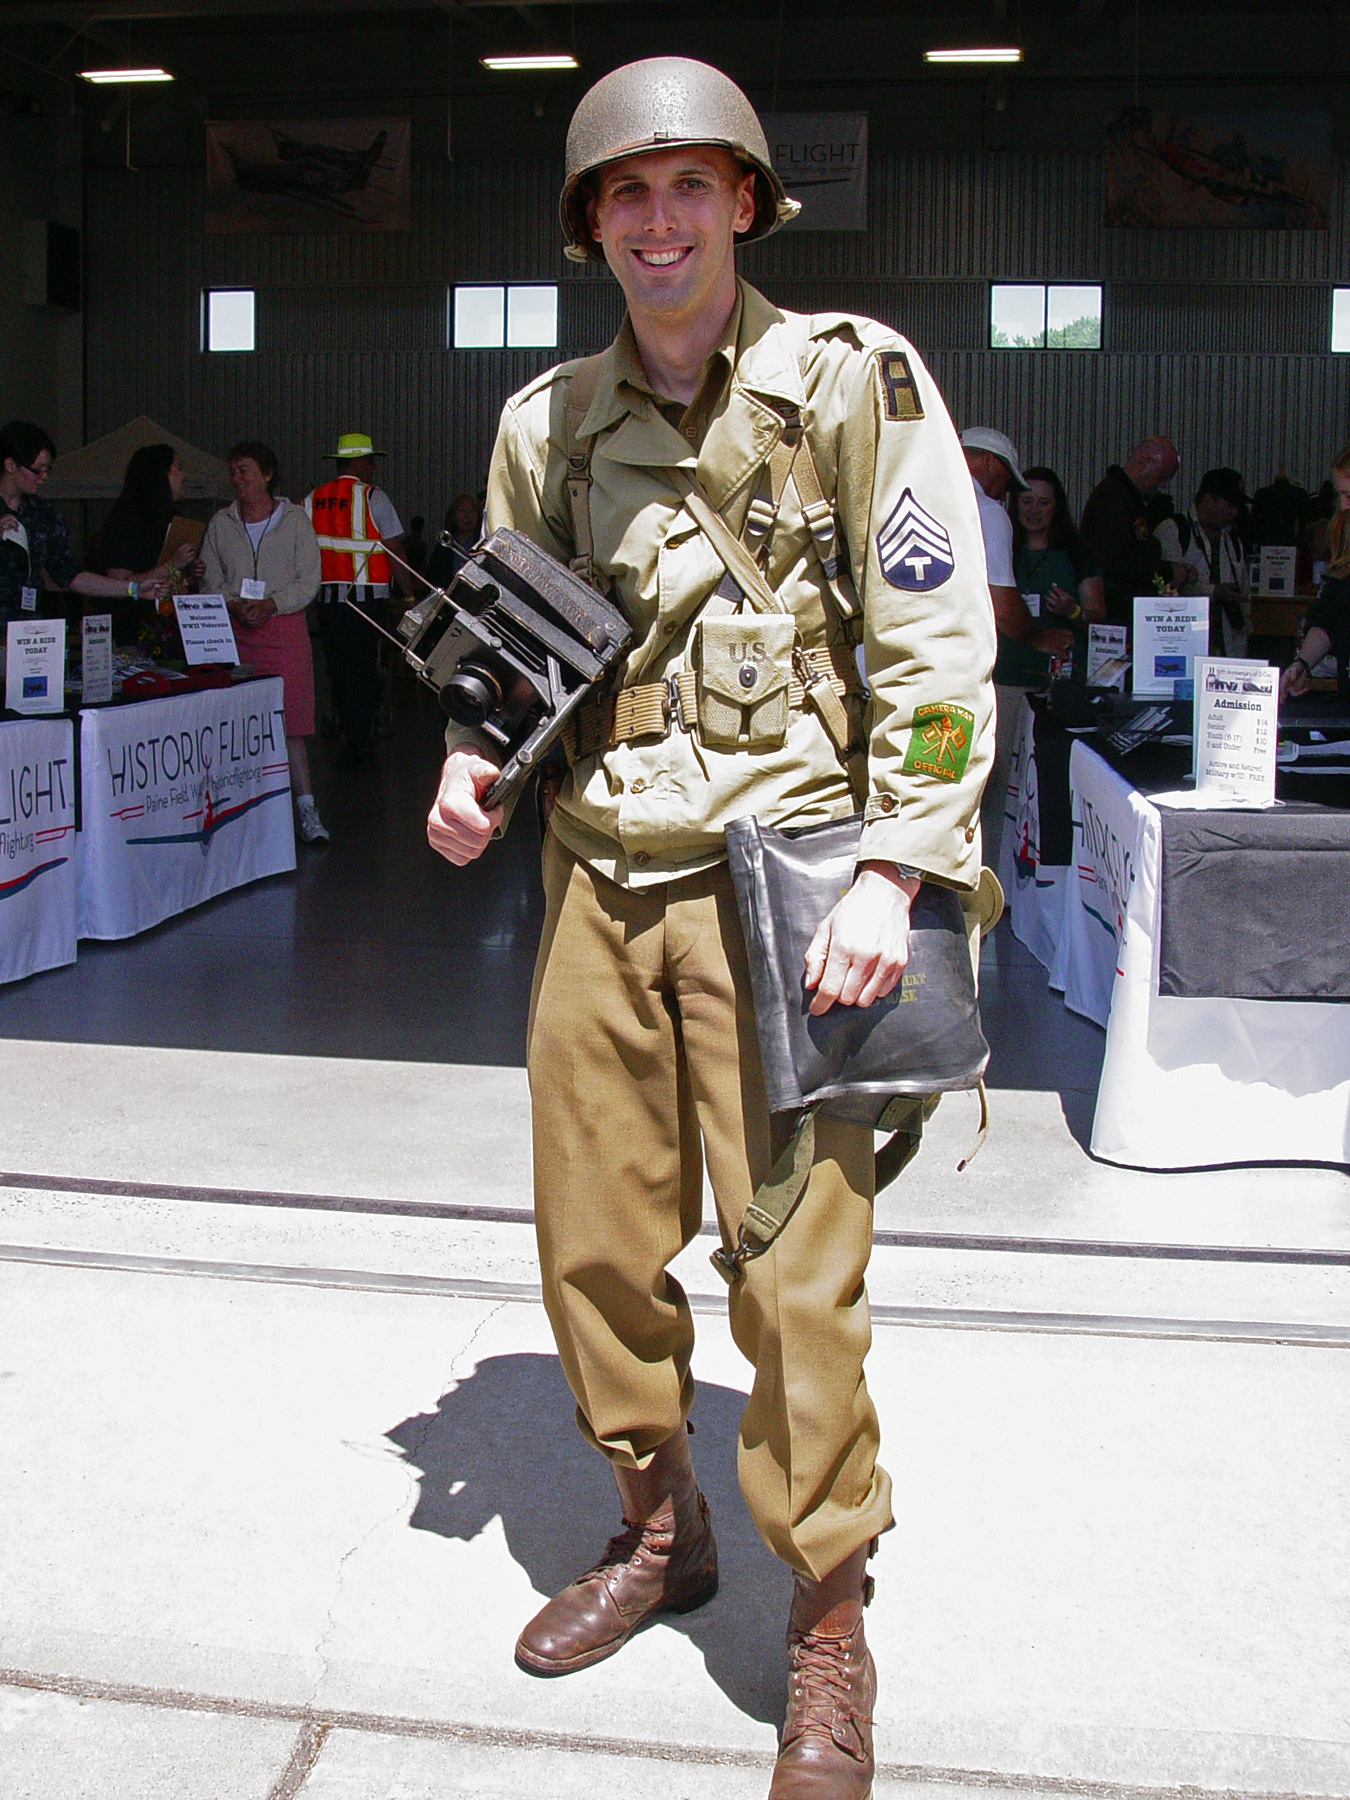 The Signal Corps Photographer